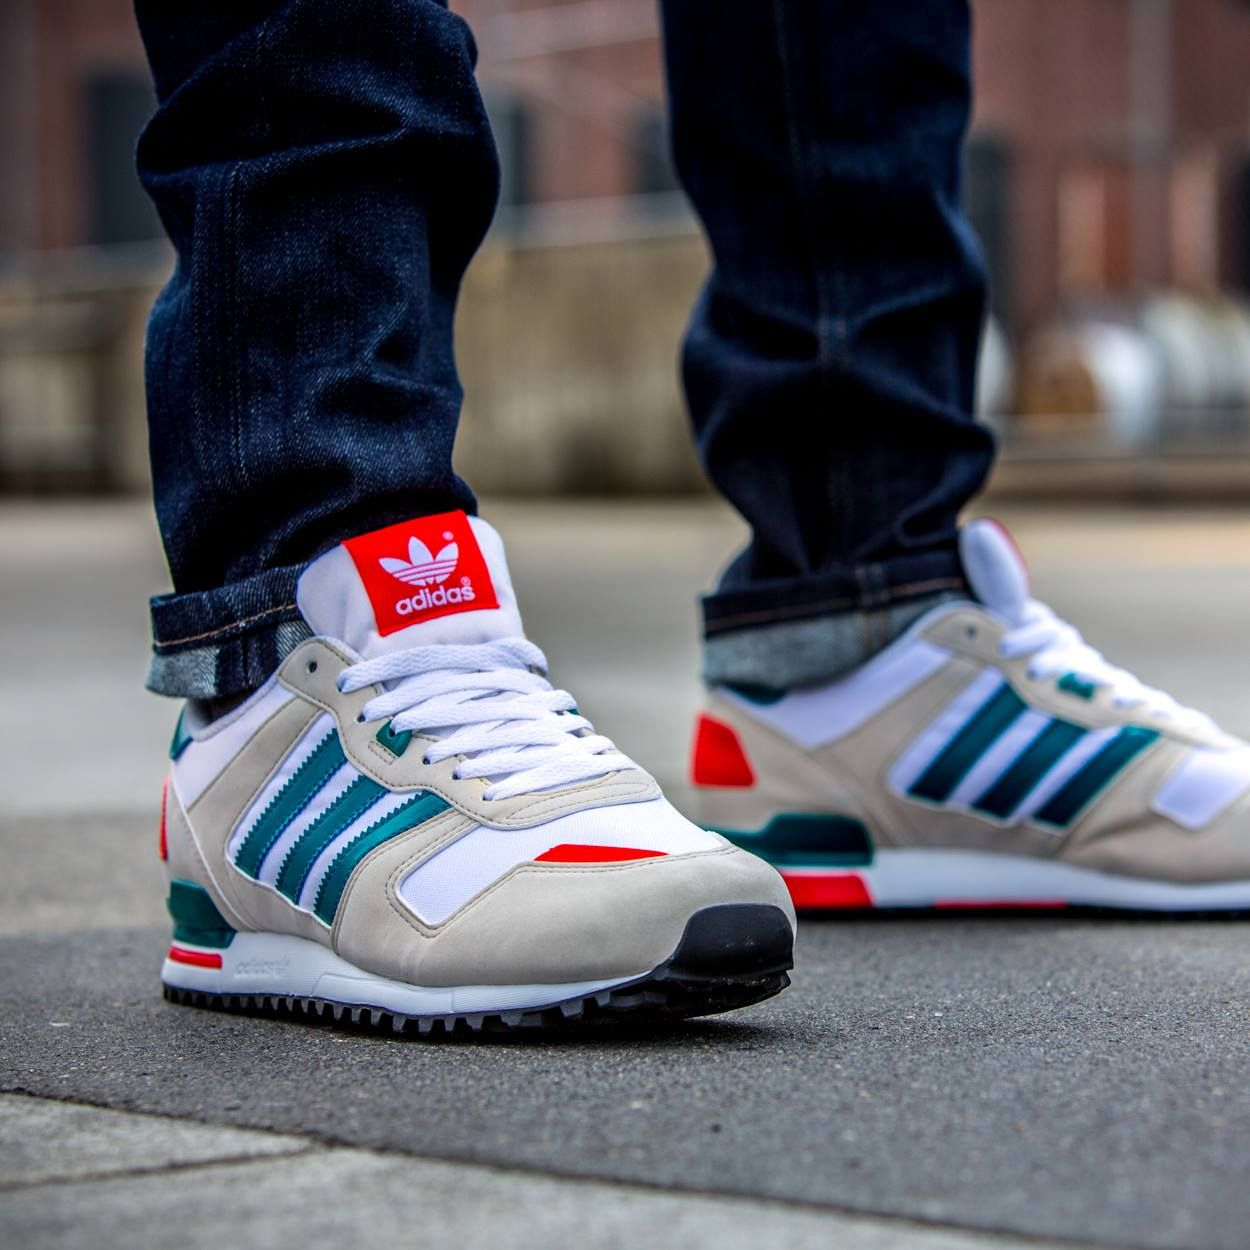 huge selection of 8d764 498f1 Corriendo · Jorge · adidas Originals ZX 700